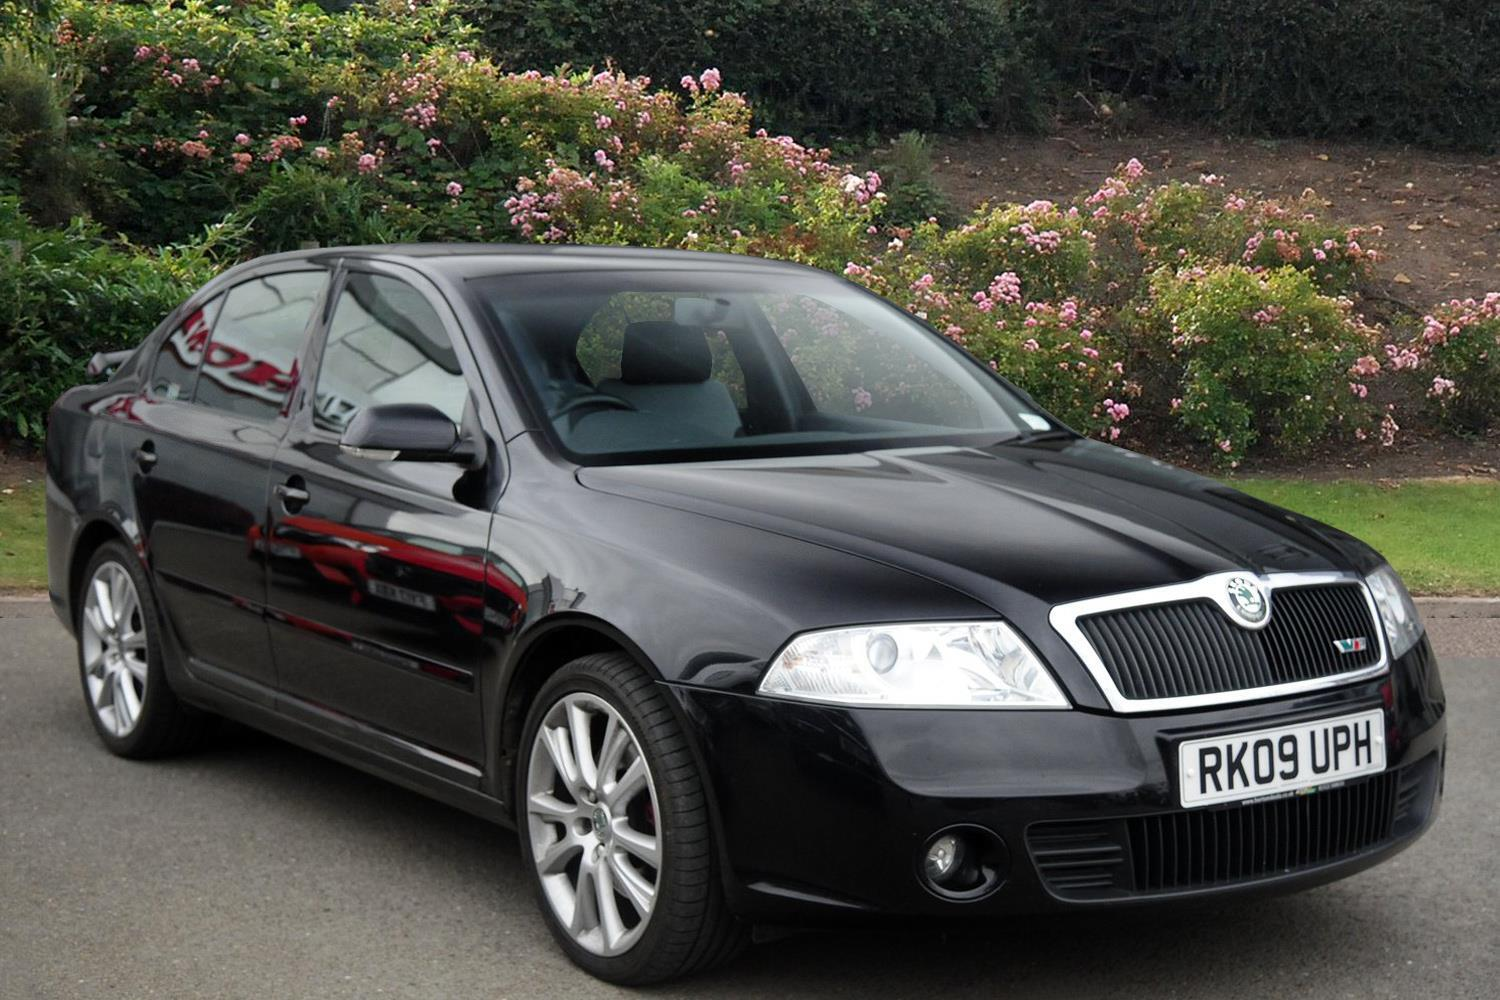 used skoda octavia 2 0 tdi cr 170 vrs 5dr dsg diesel hatchback for sale bristol street motors. Black Bedroom Furniture Sets. Home Design Ideas